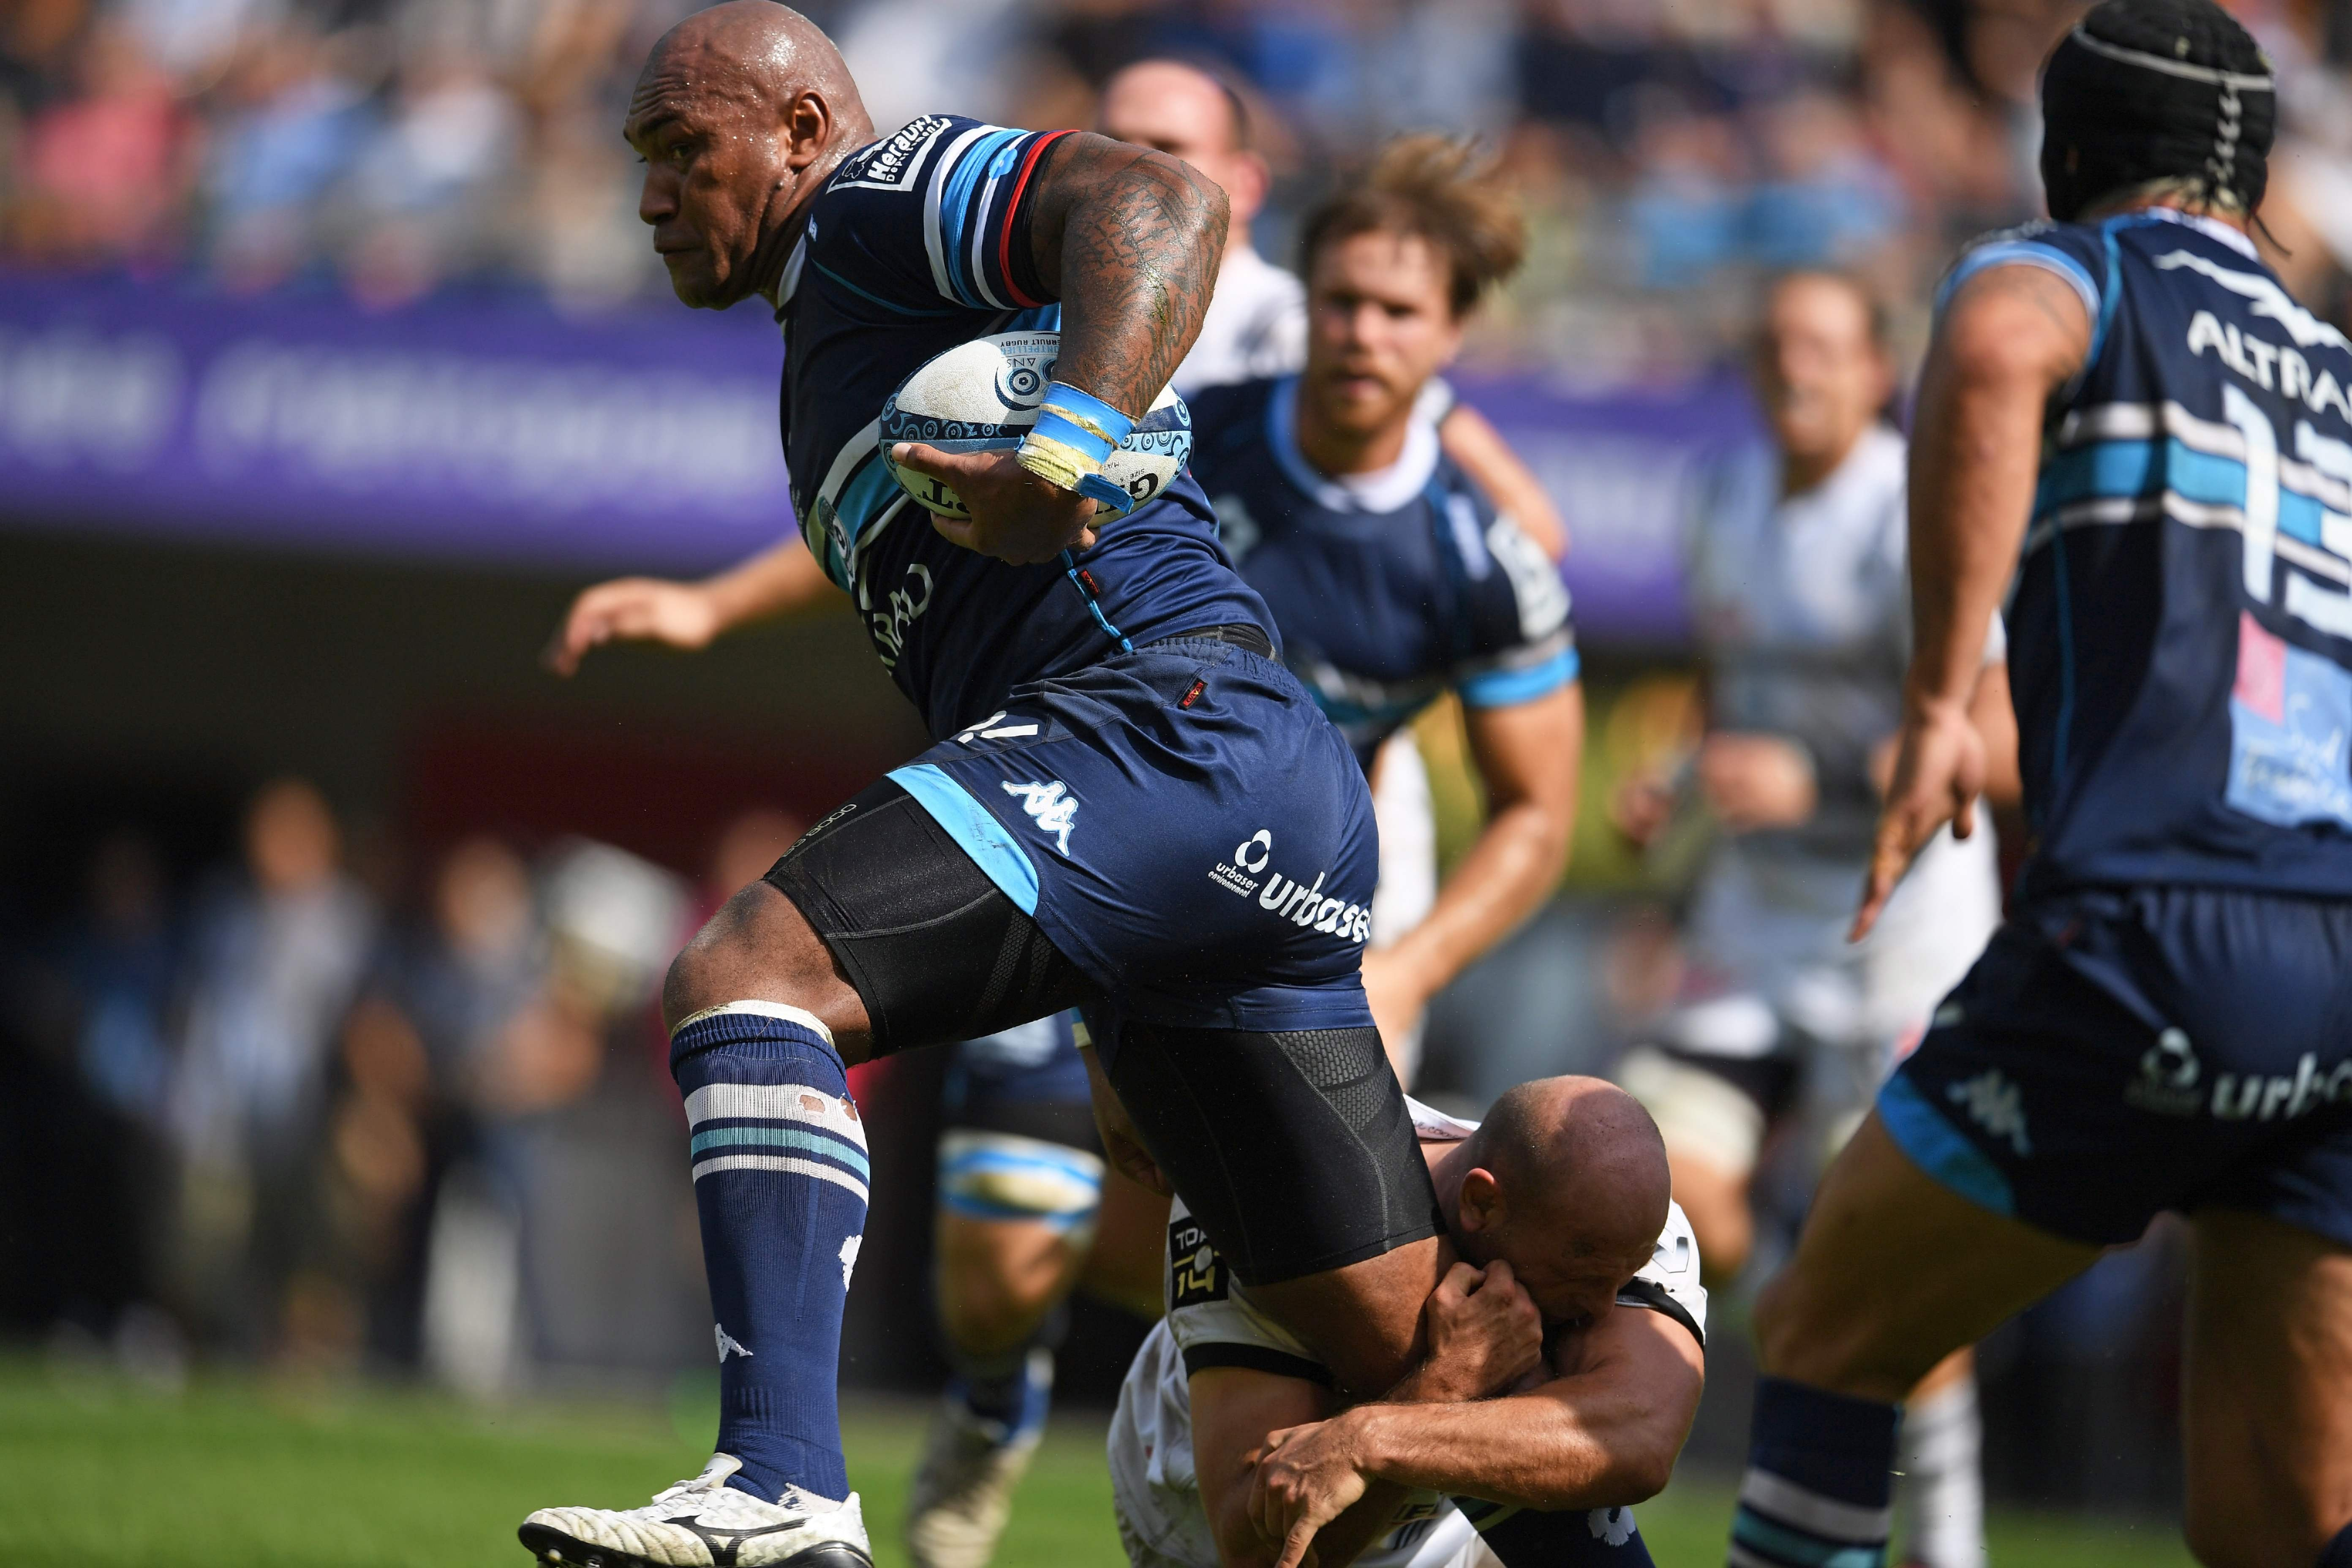 Rugby - Top 14 - Montpellier confirme devant Brive, Nadolo s'affirme